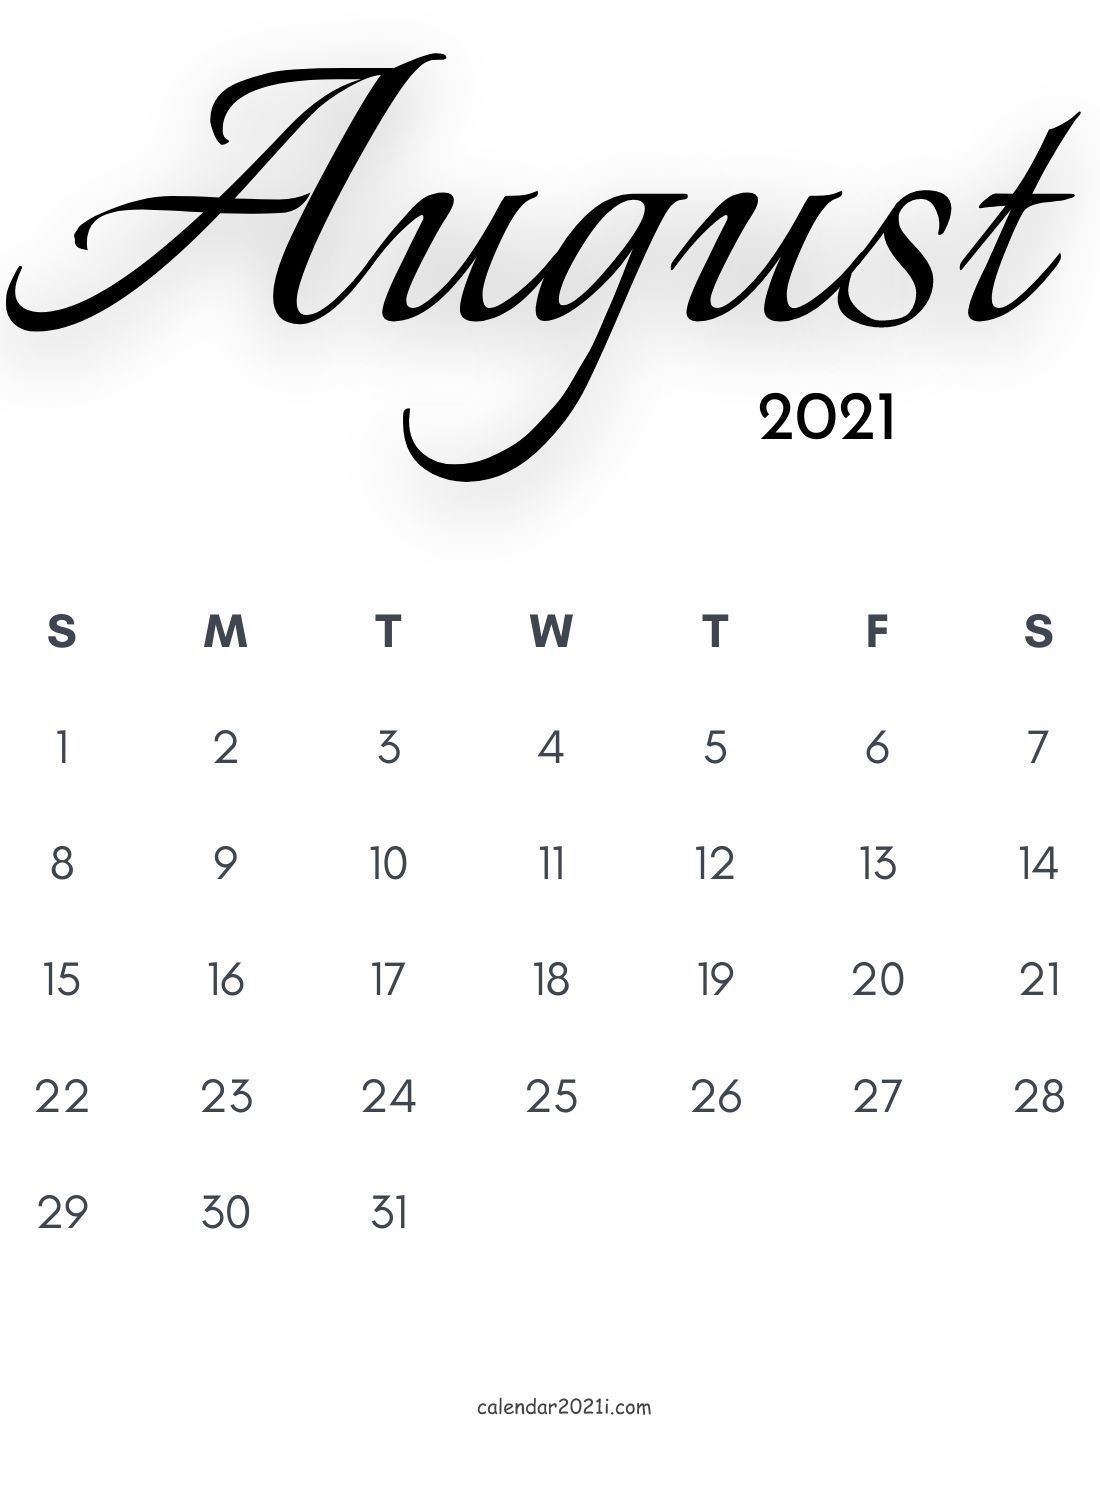 Take Month August 2021